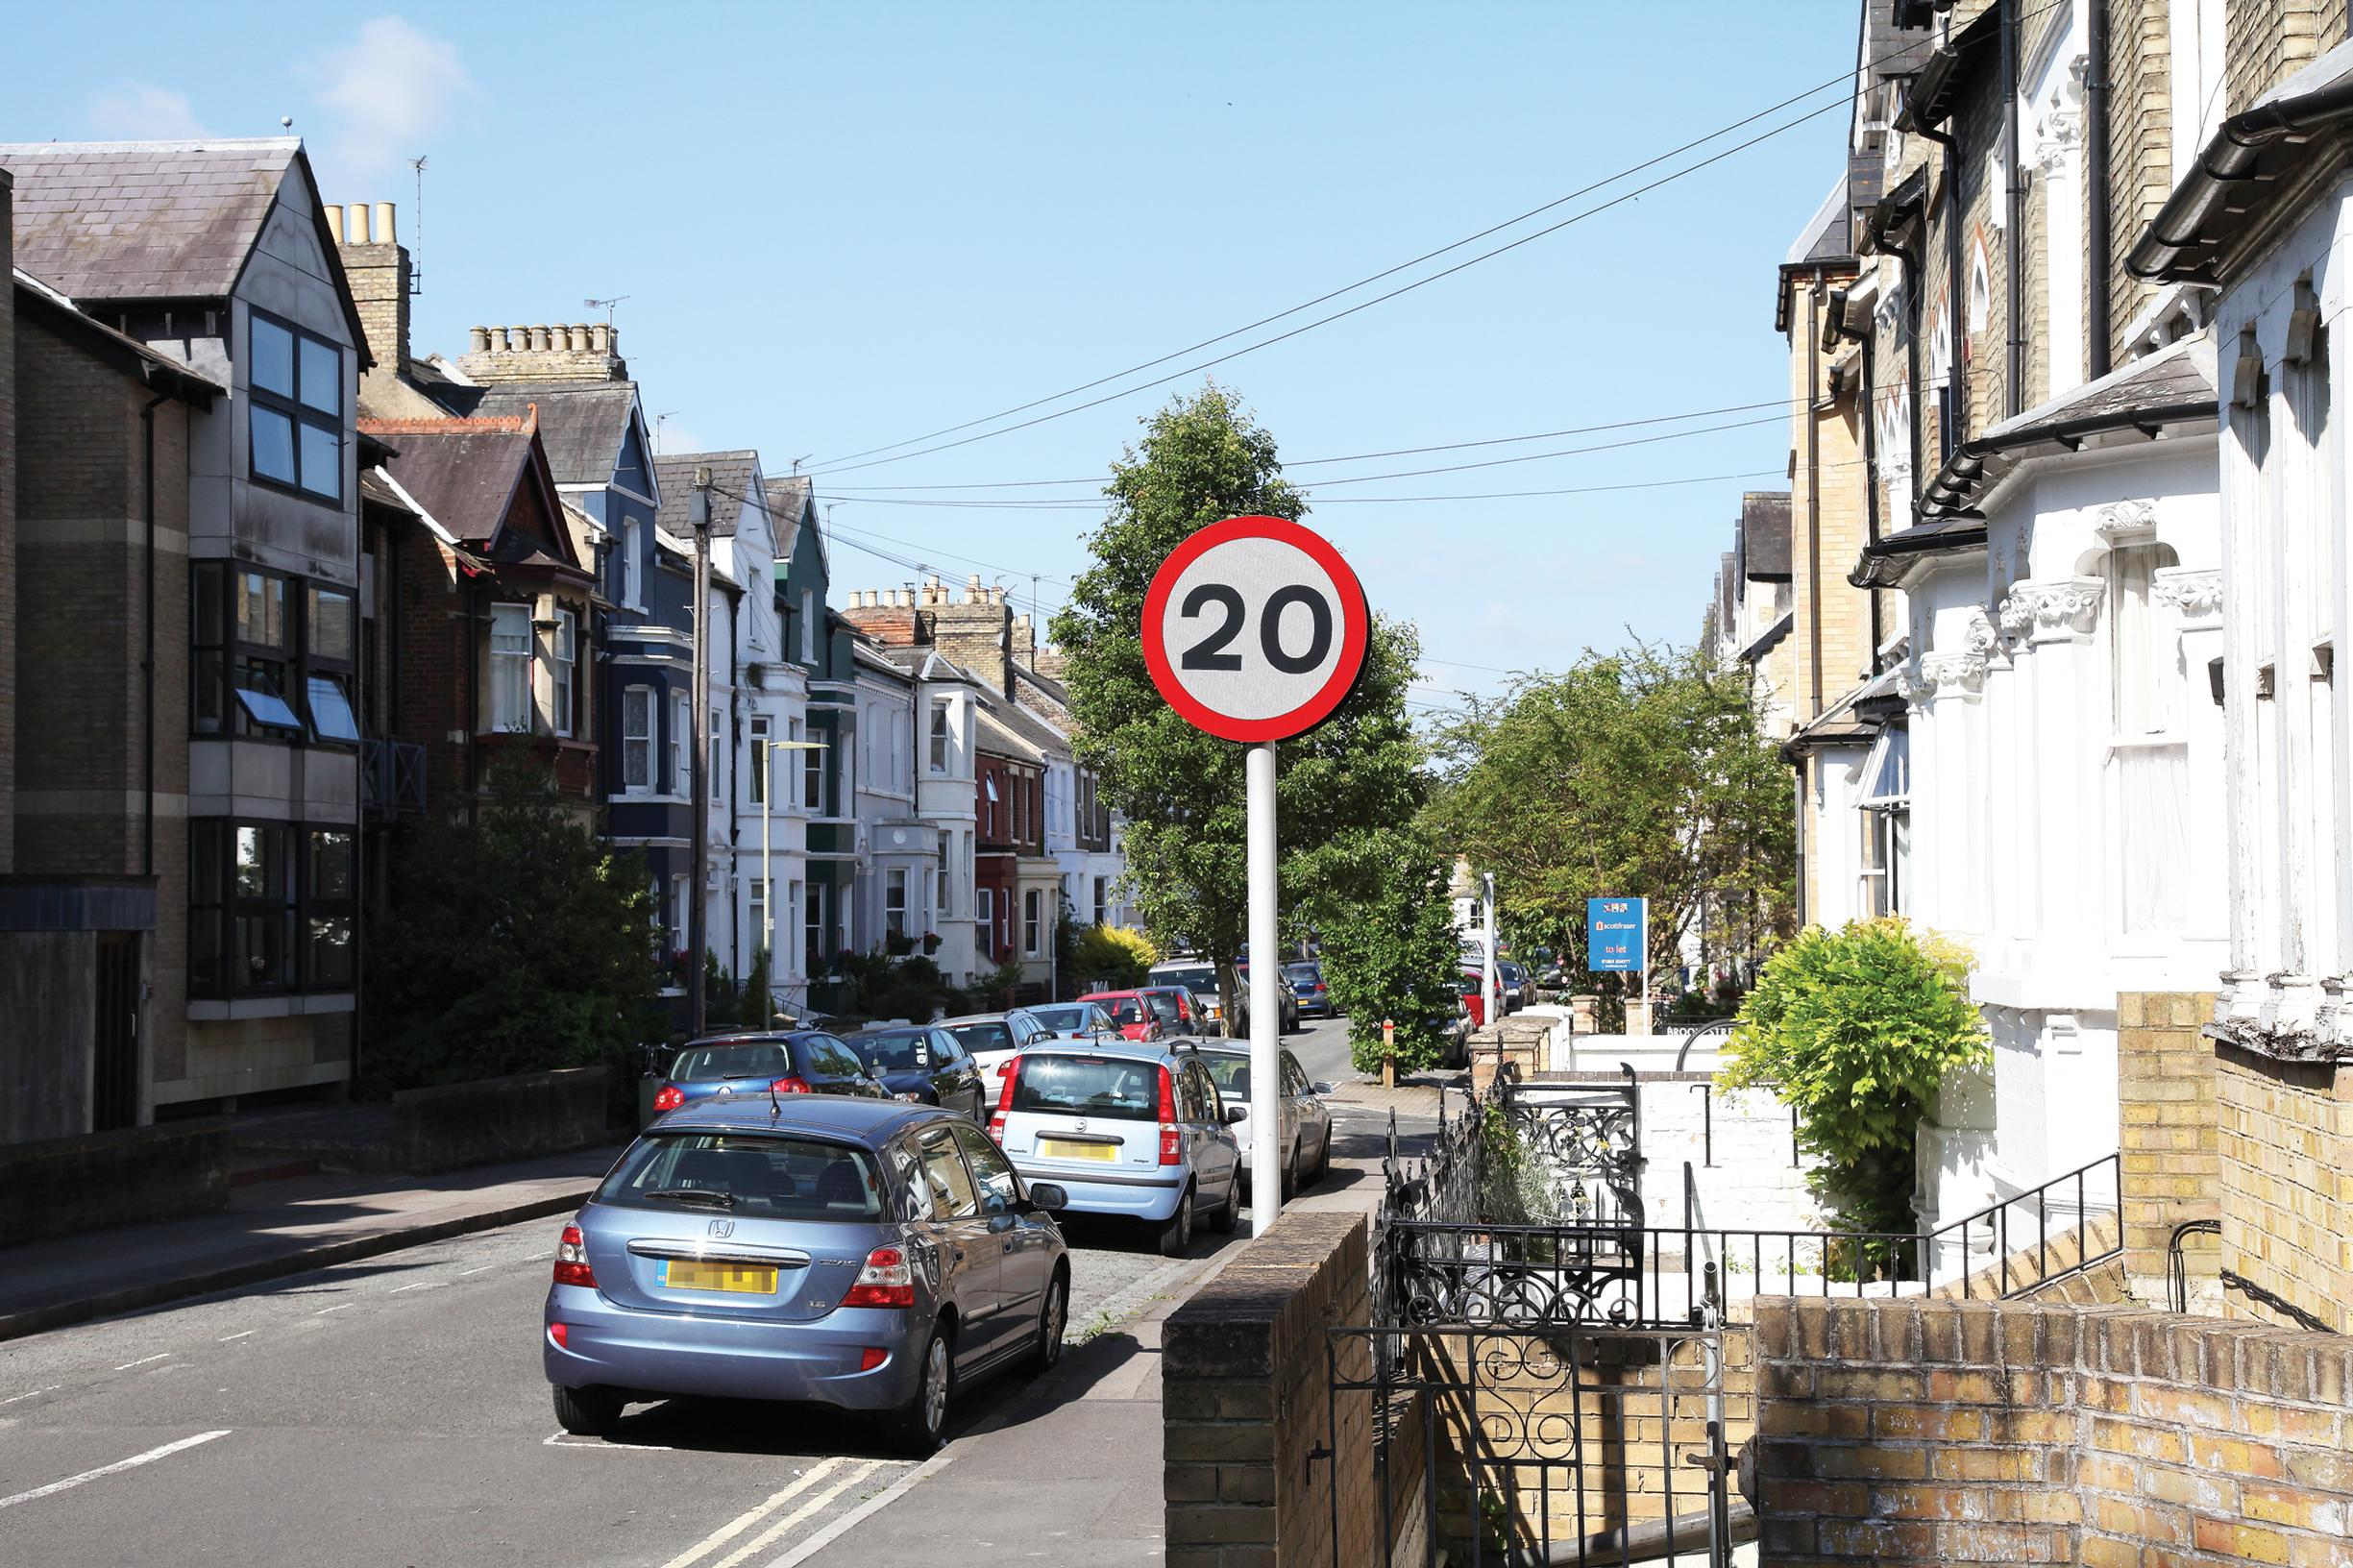 A?20mph limit will reduce driver confusion, says Richmond